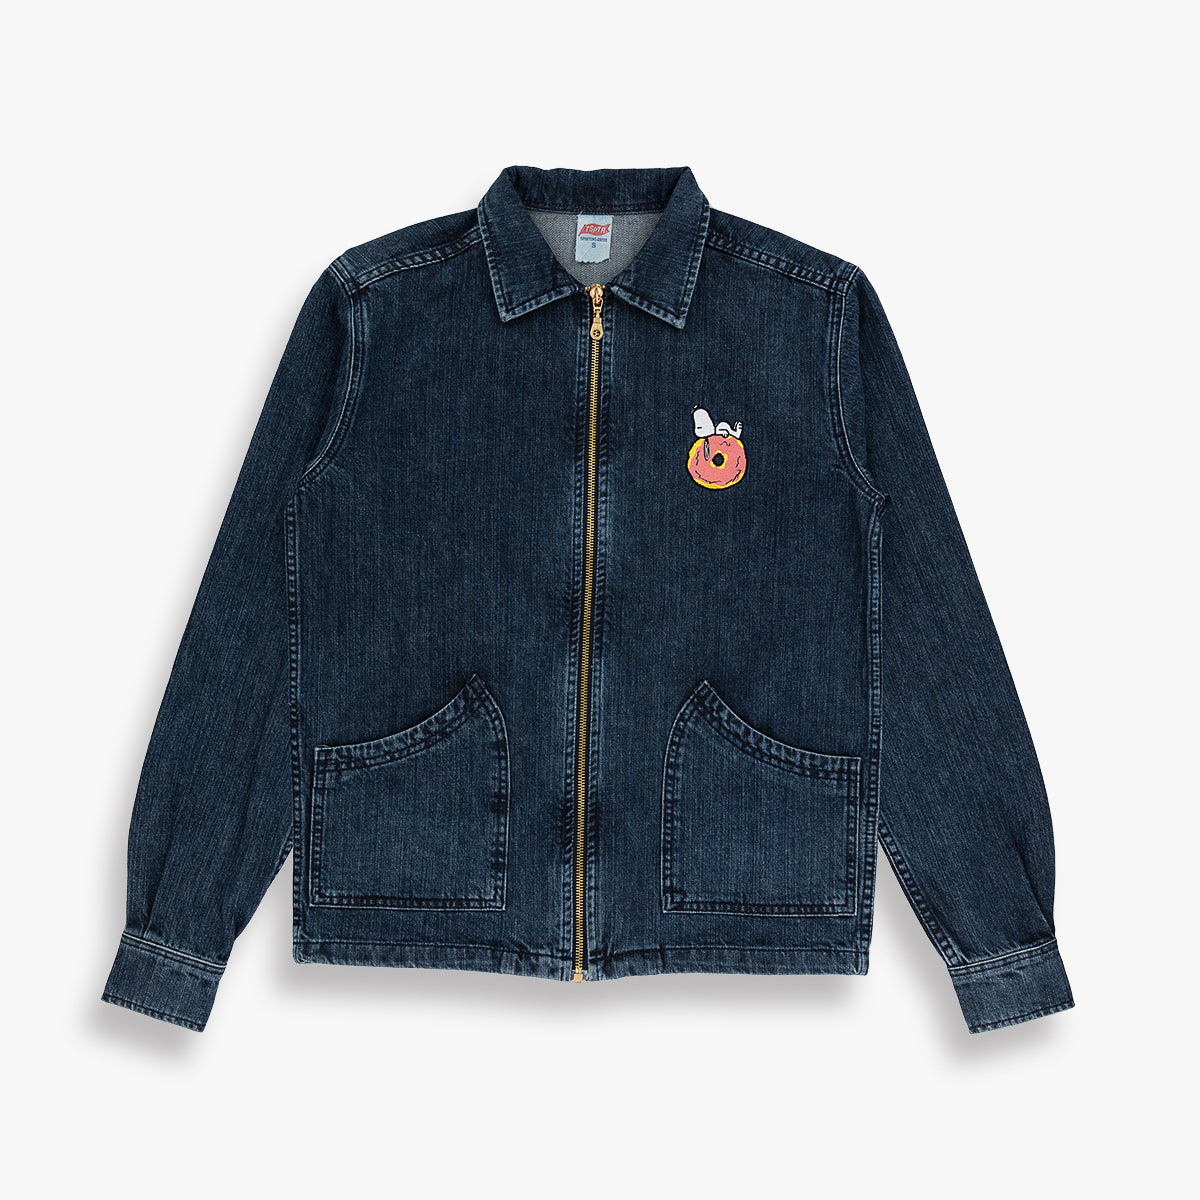 SNOOPY DONUT DENIM JACKET